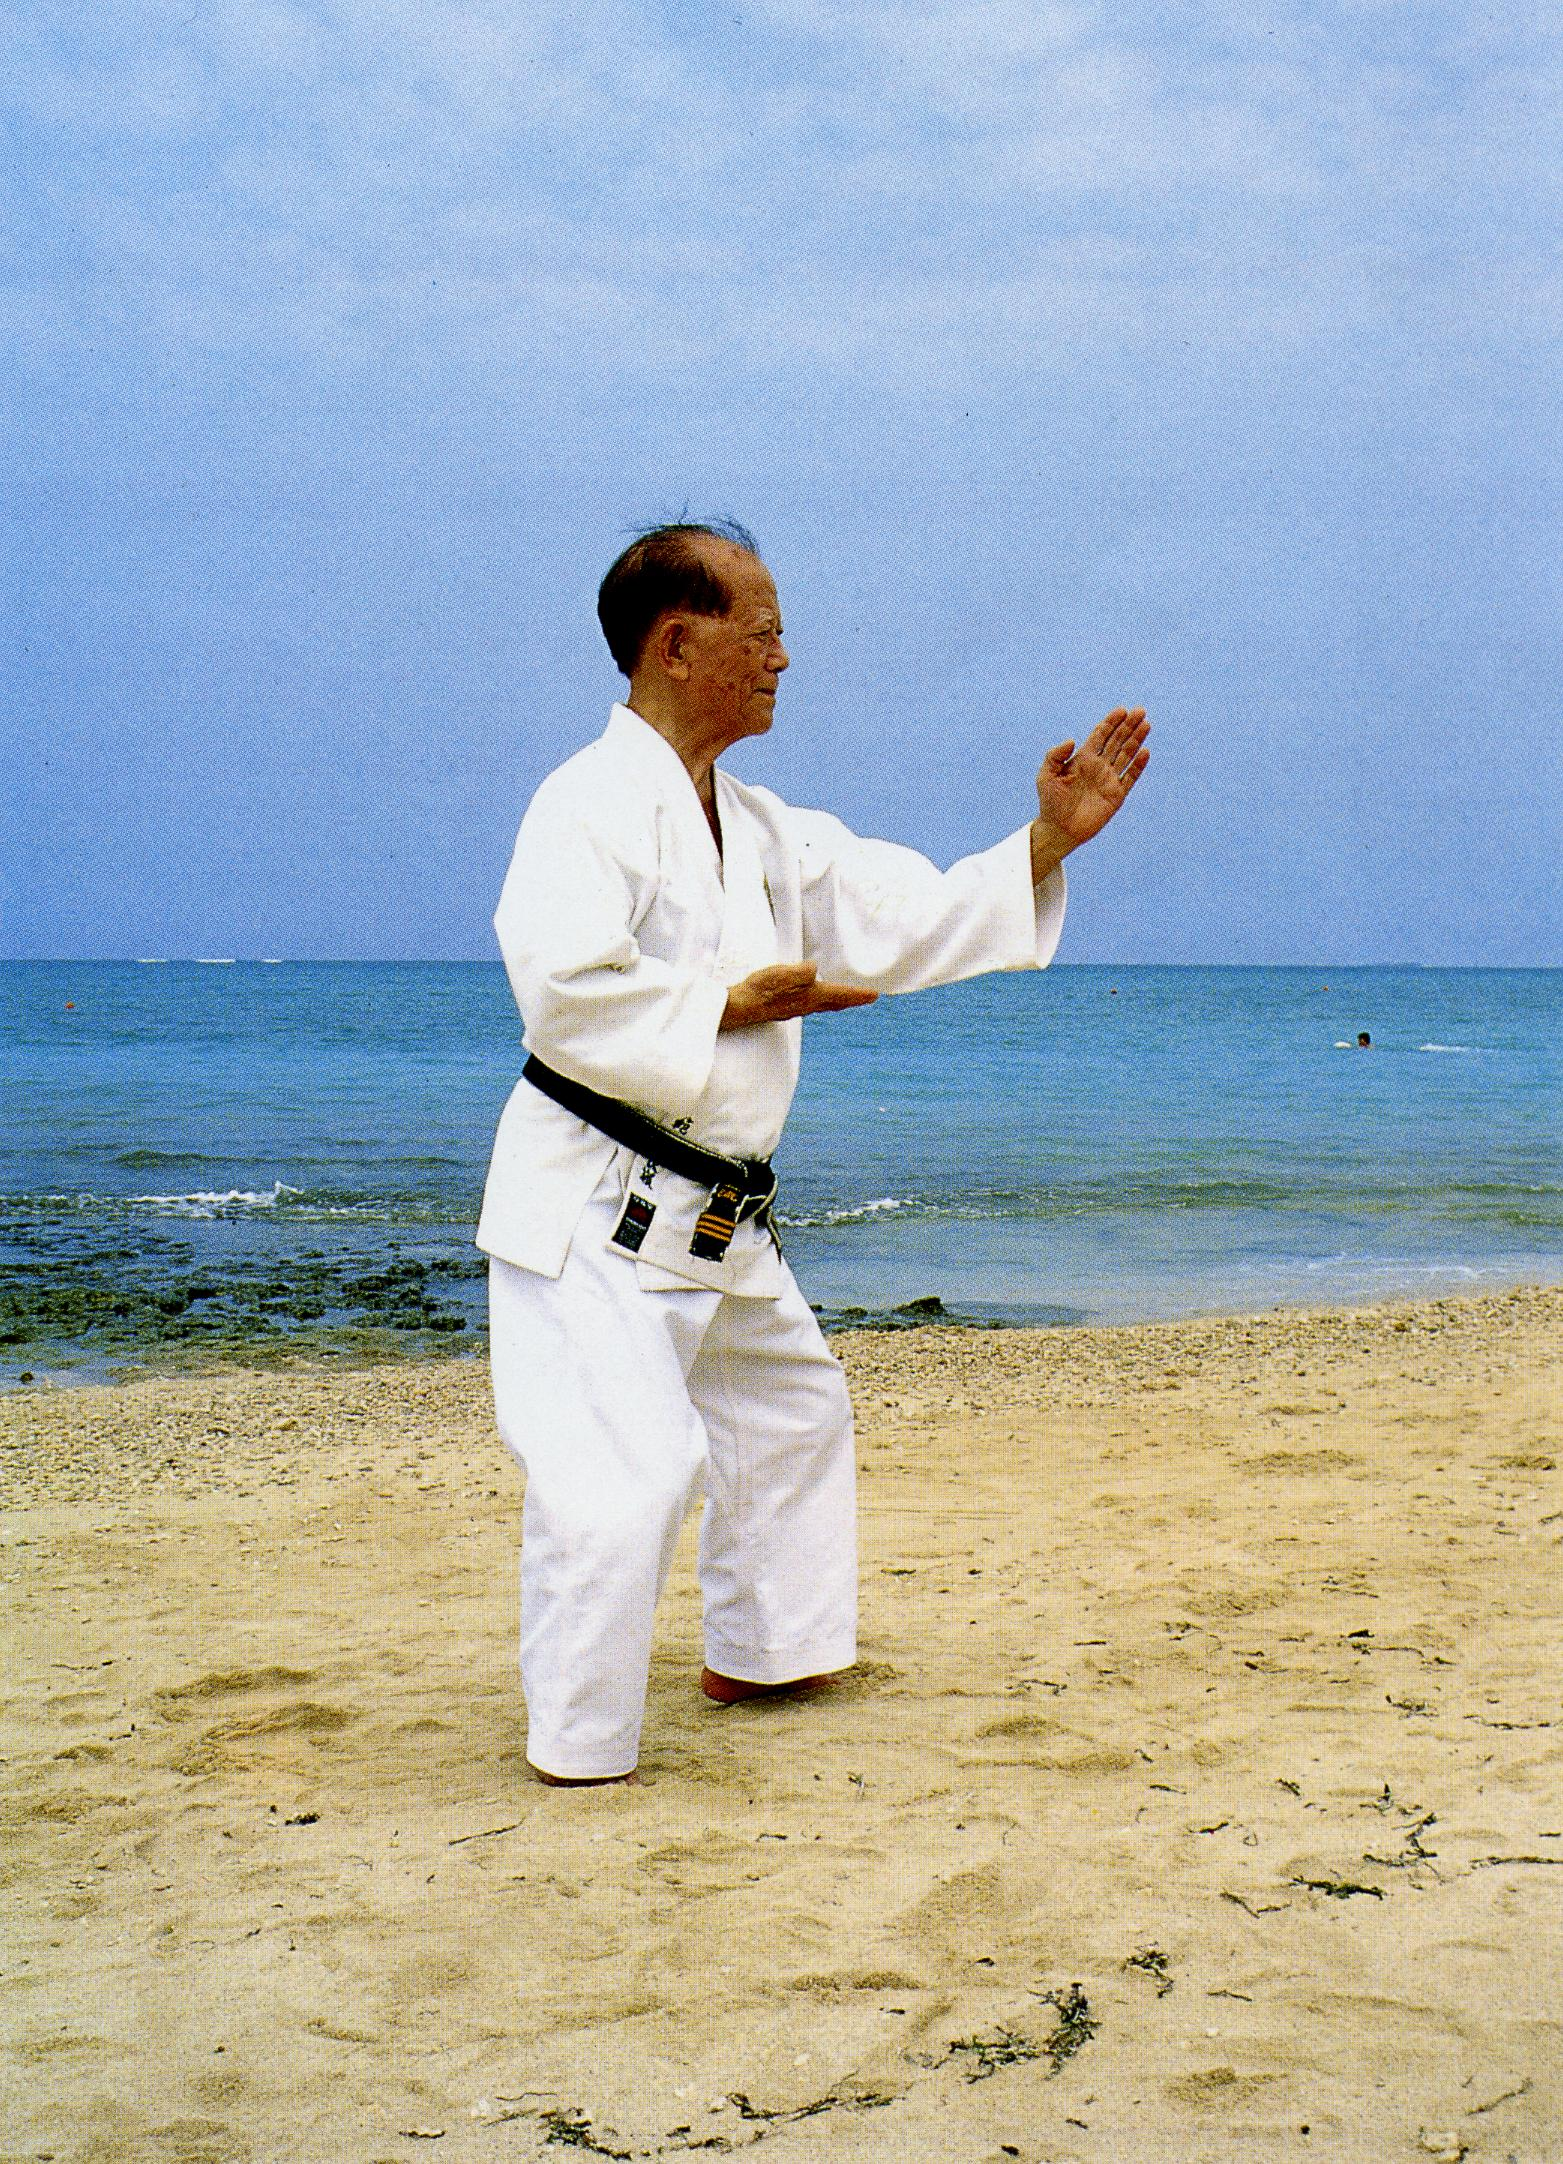 Grand Master Nagamine performing neko-ashi dachi, chudan shoto shuto-uke on the beach